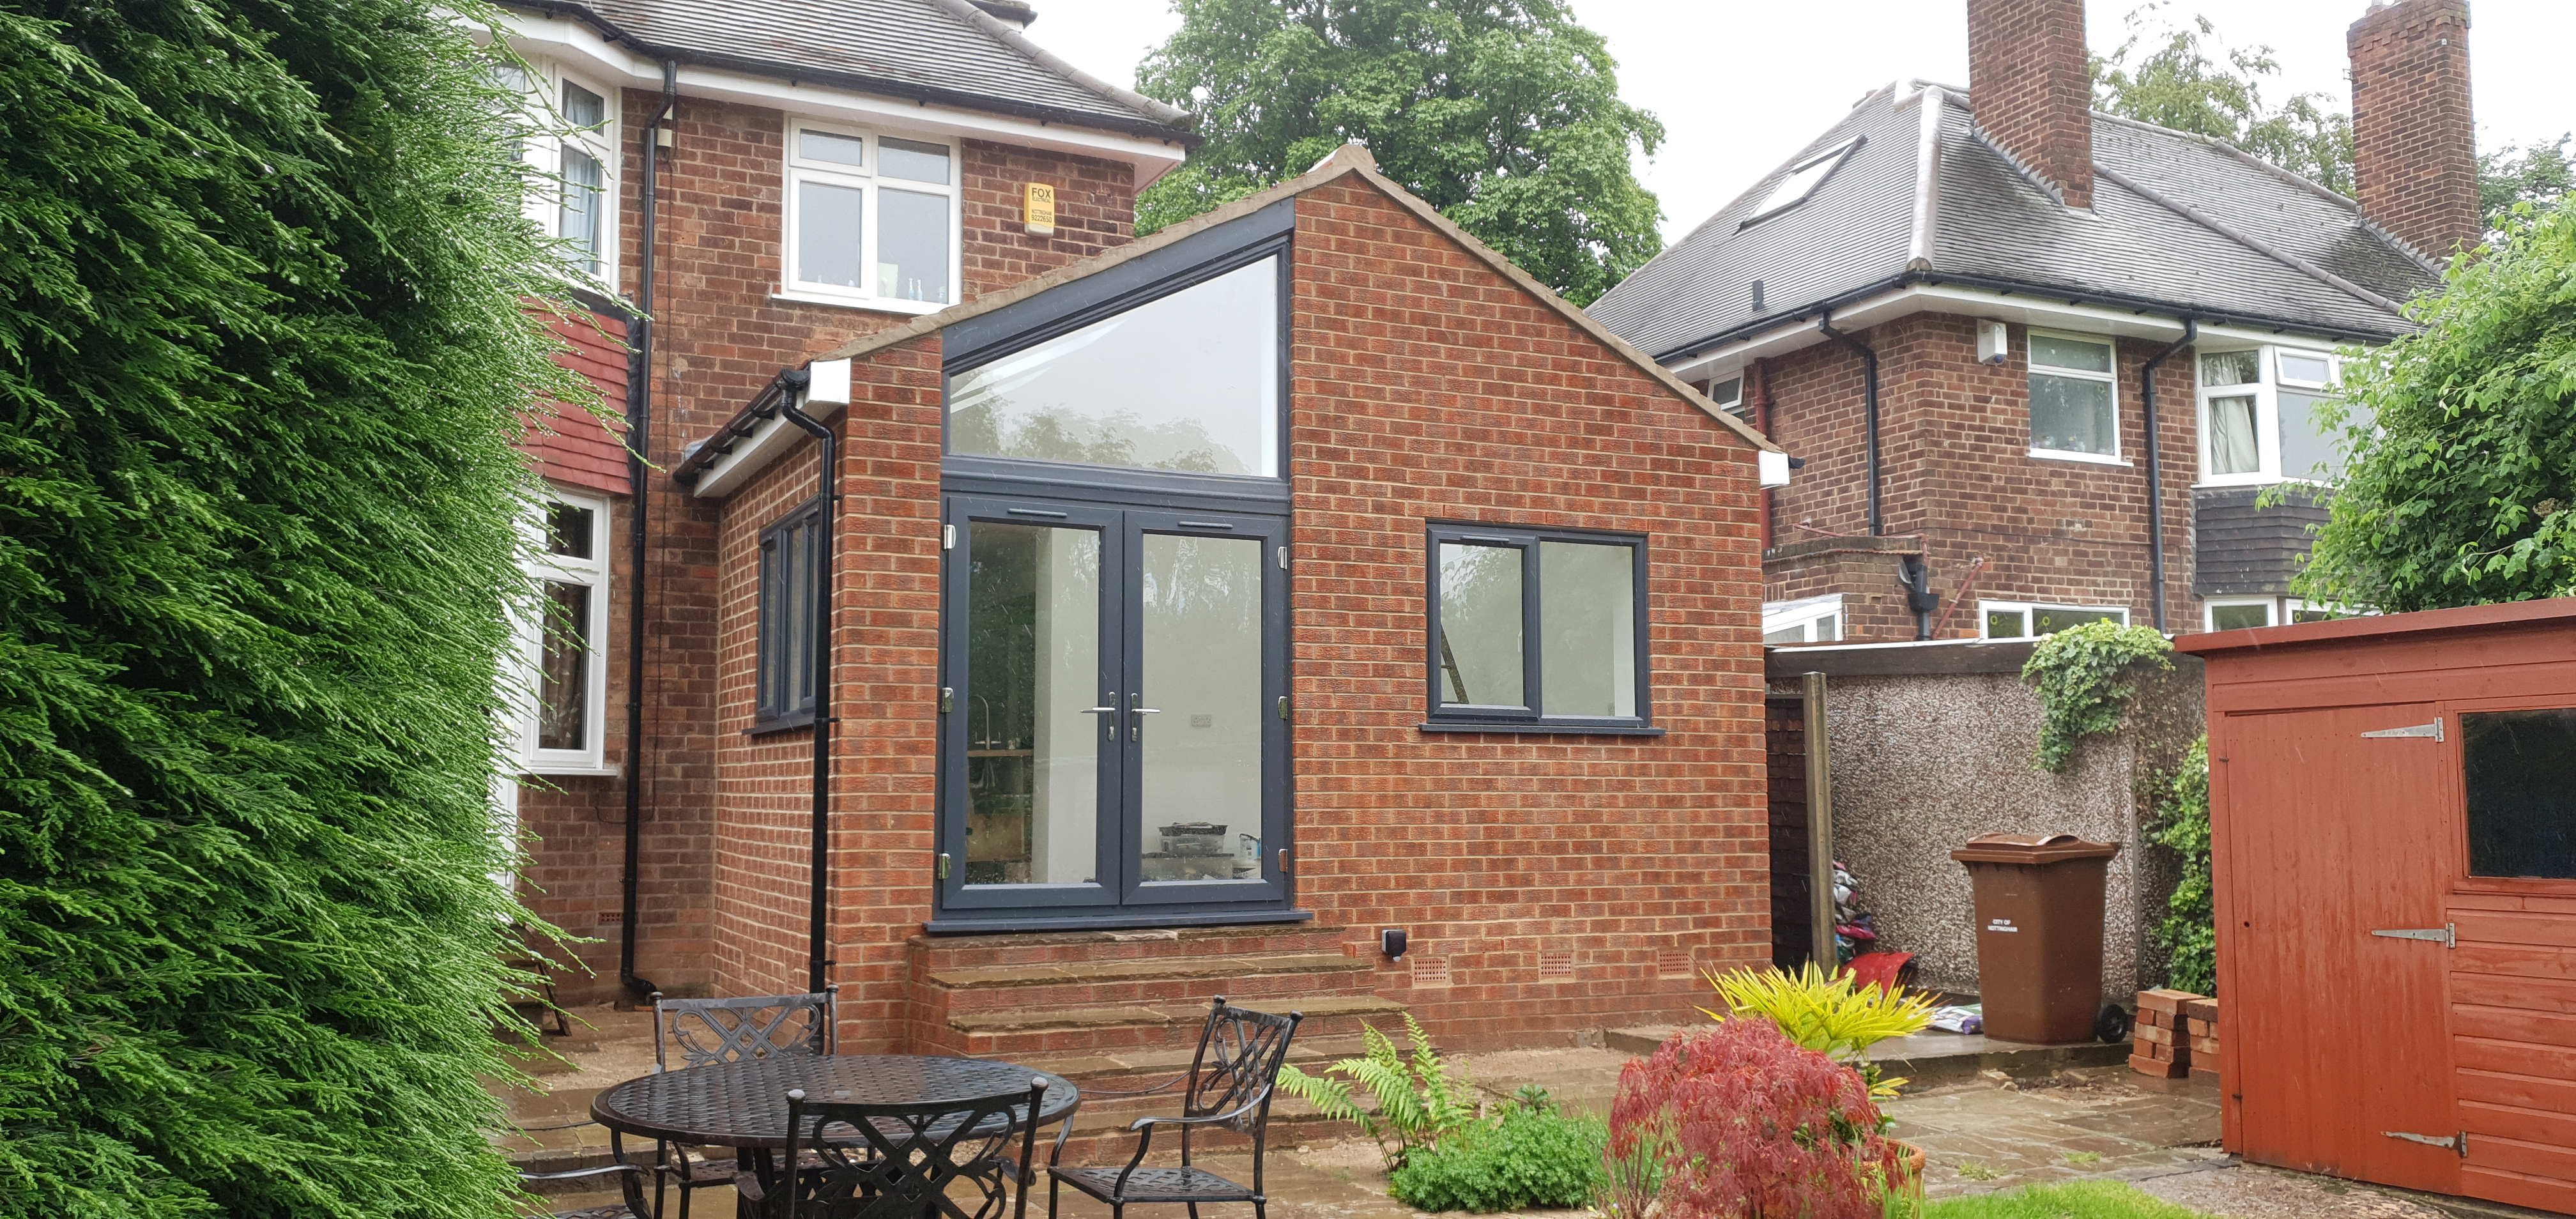 Single storey rear extension in Nottingham